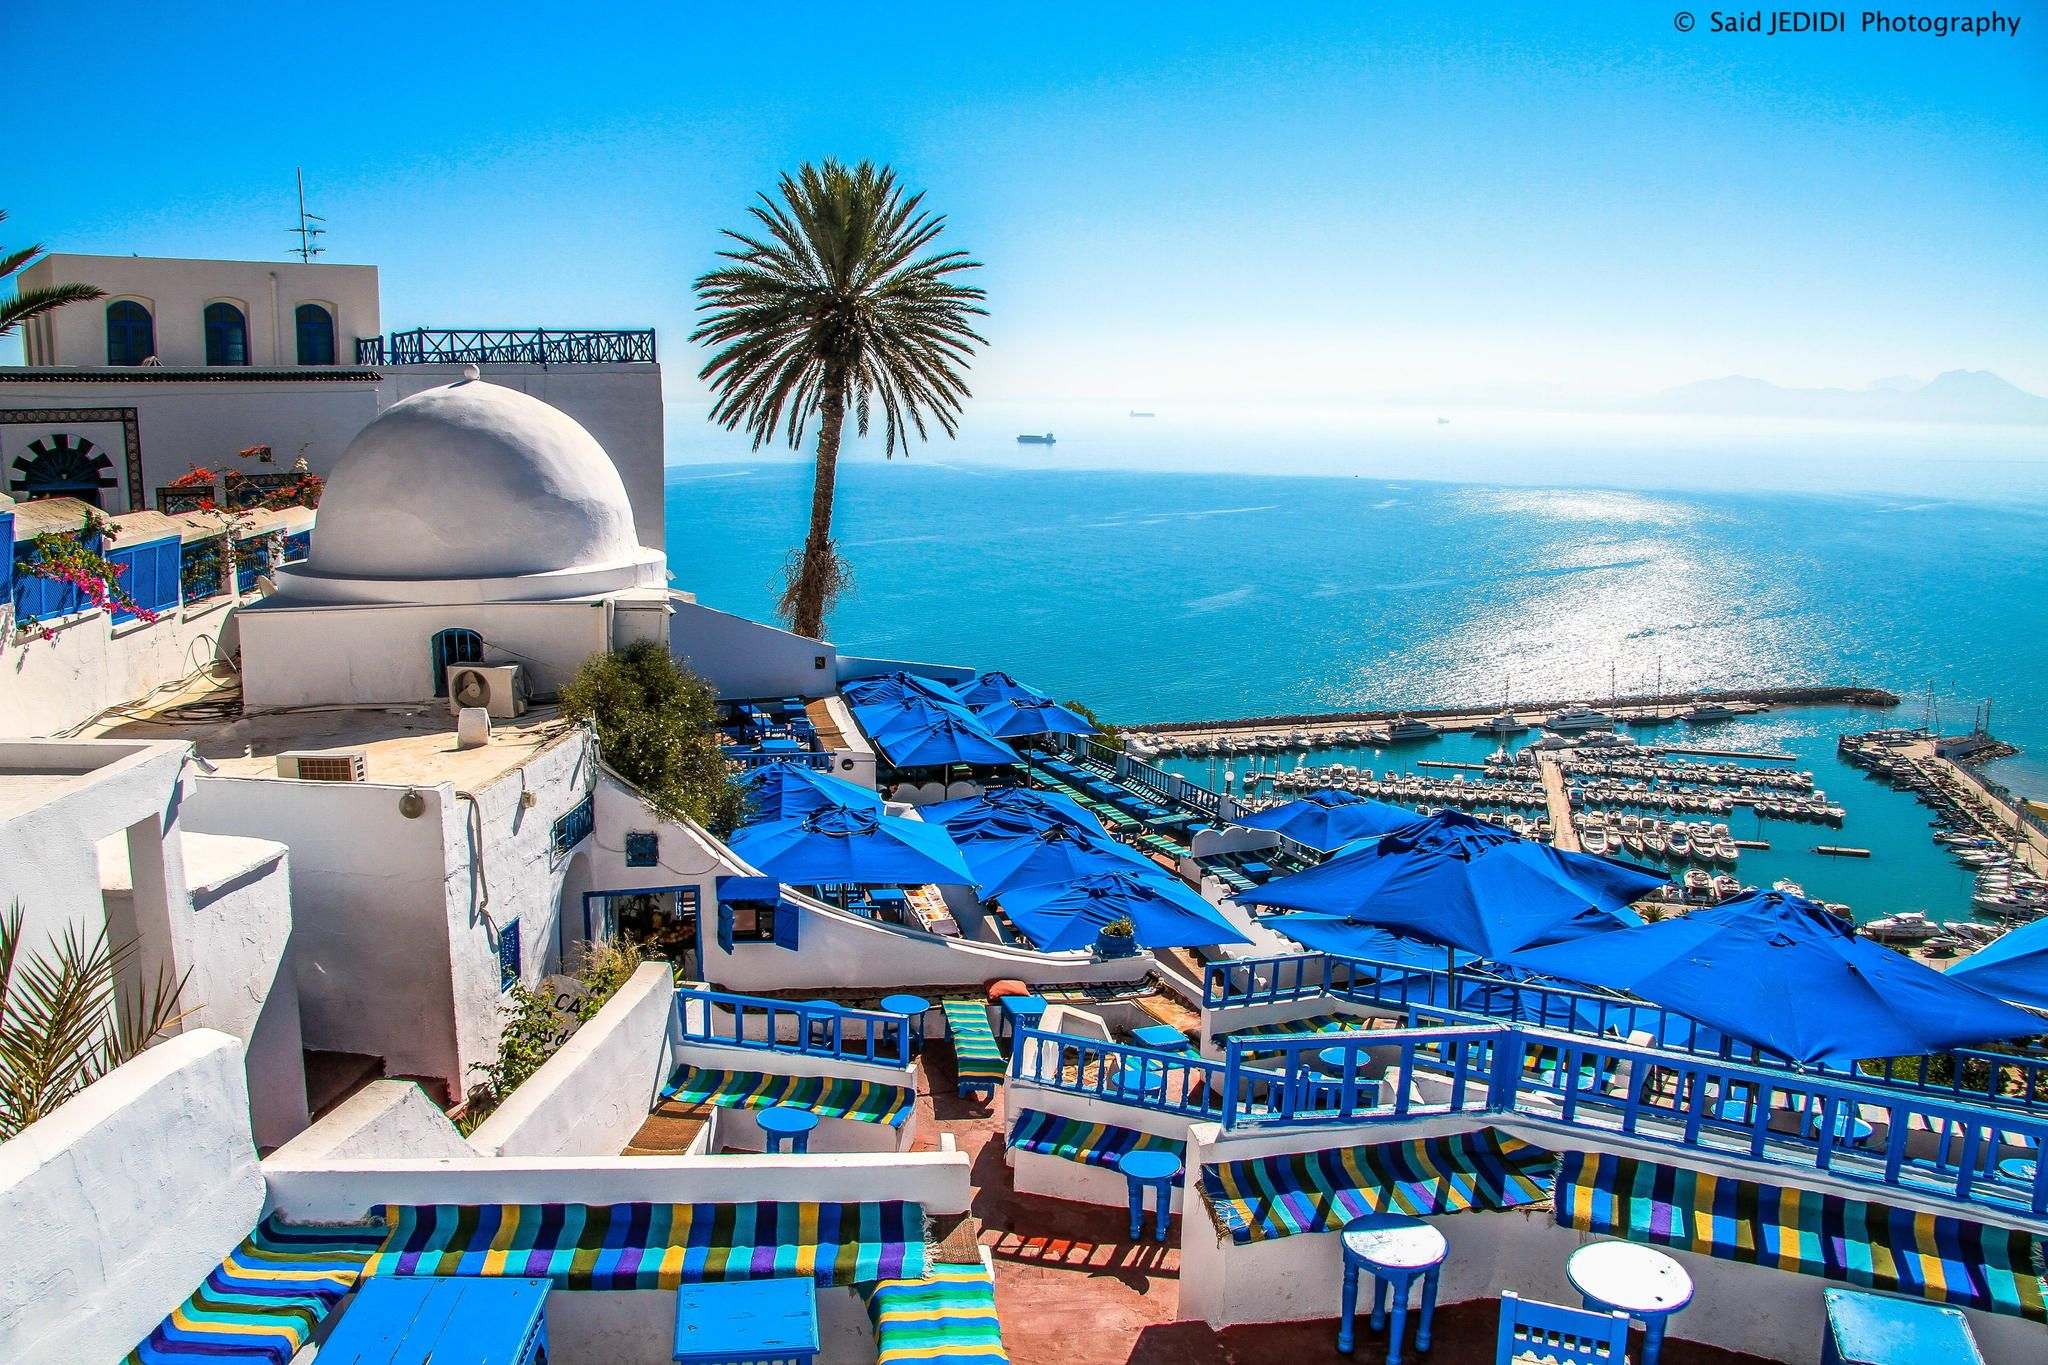 Tunisia by said jedidi on 500px sidi bou sa d tunisie for Salon 9 places tunisie